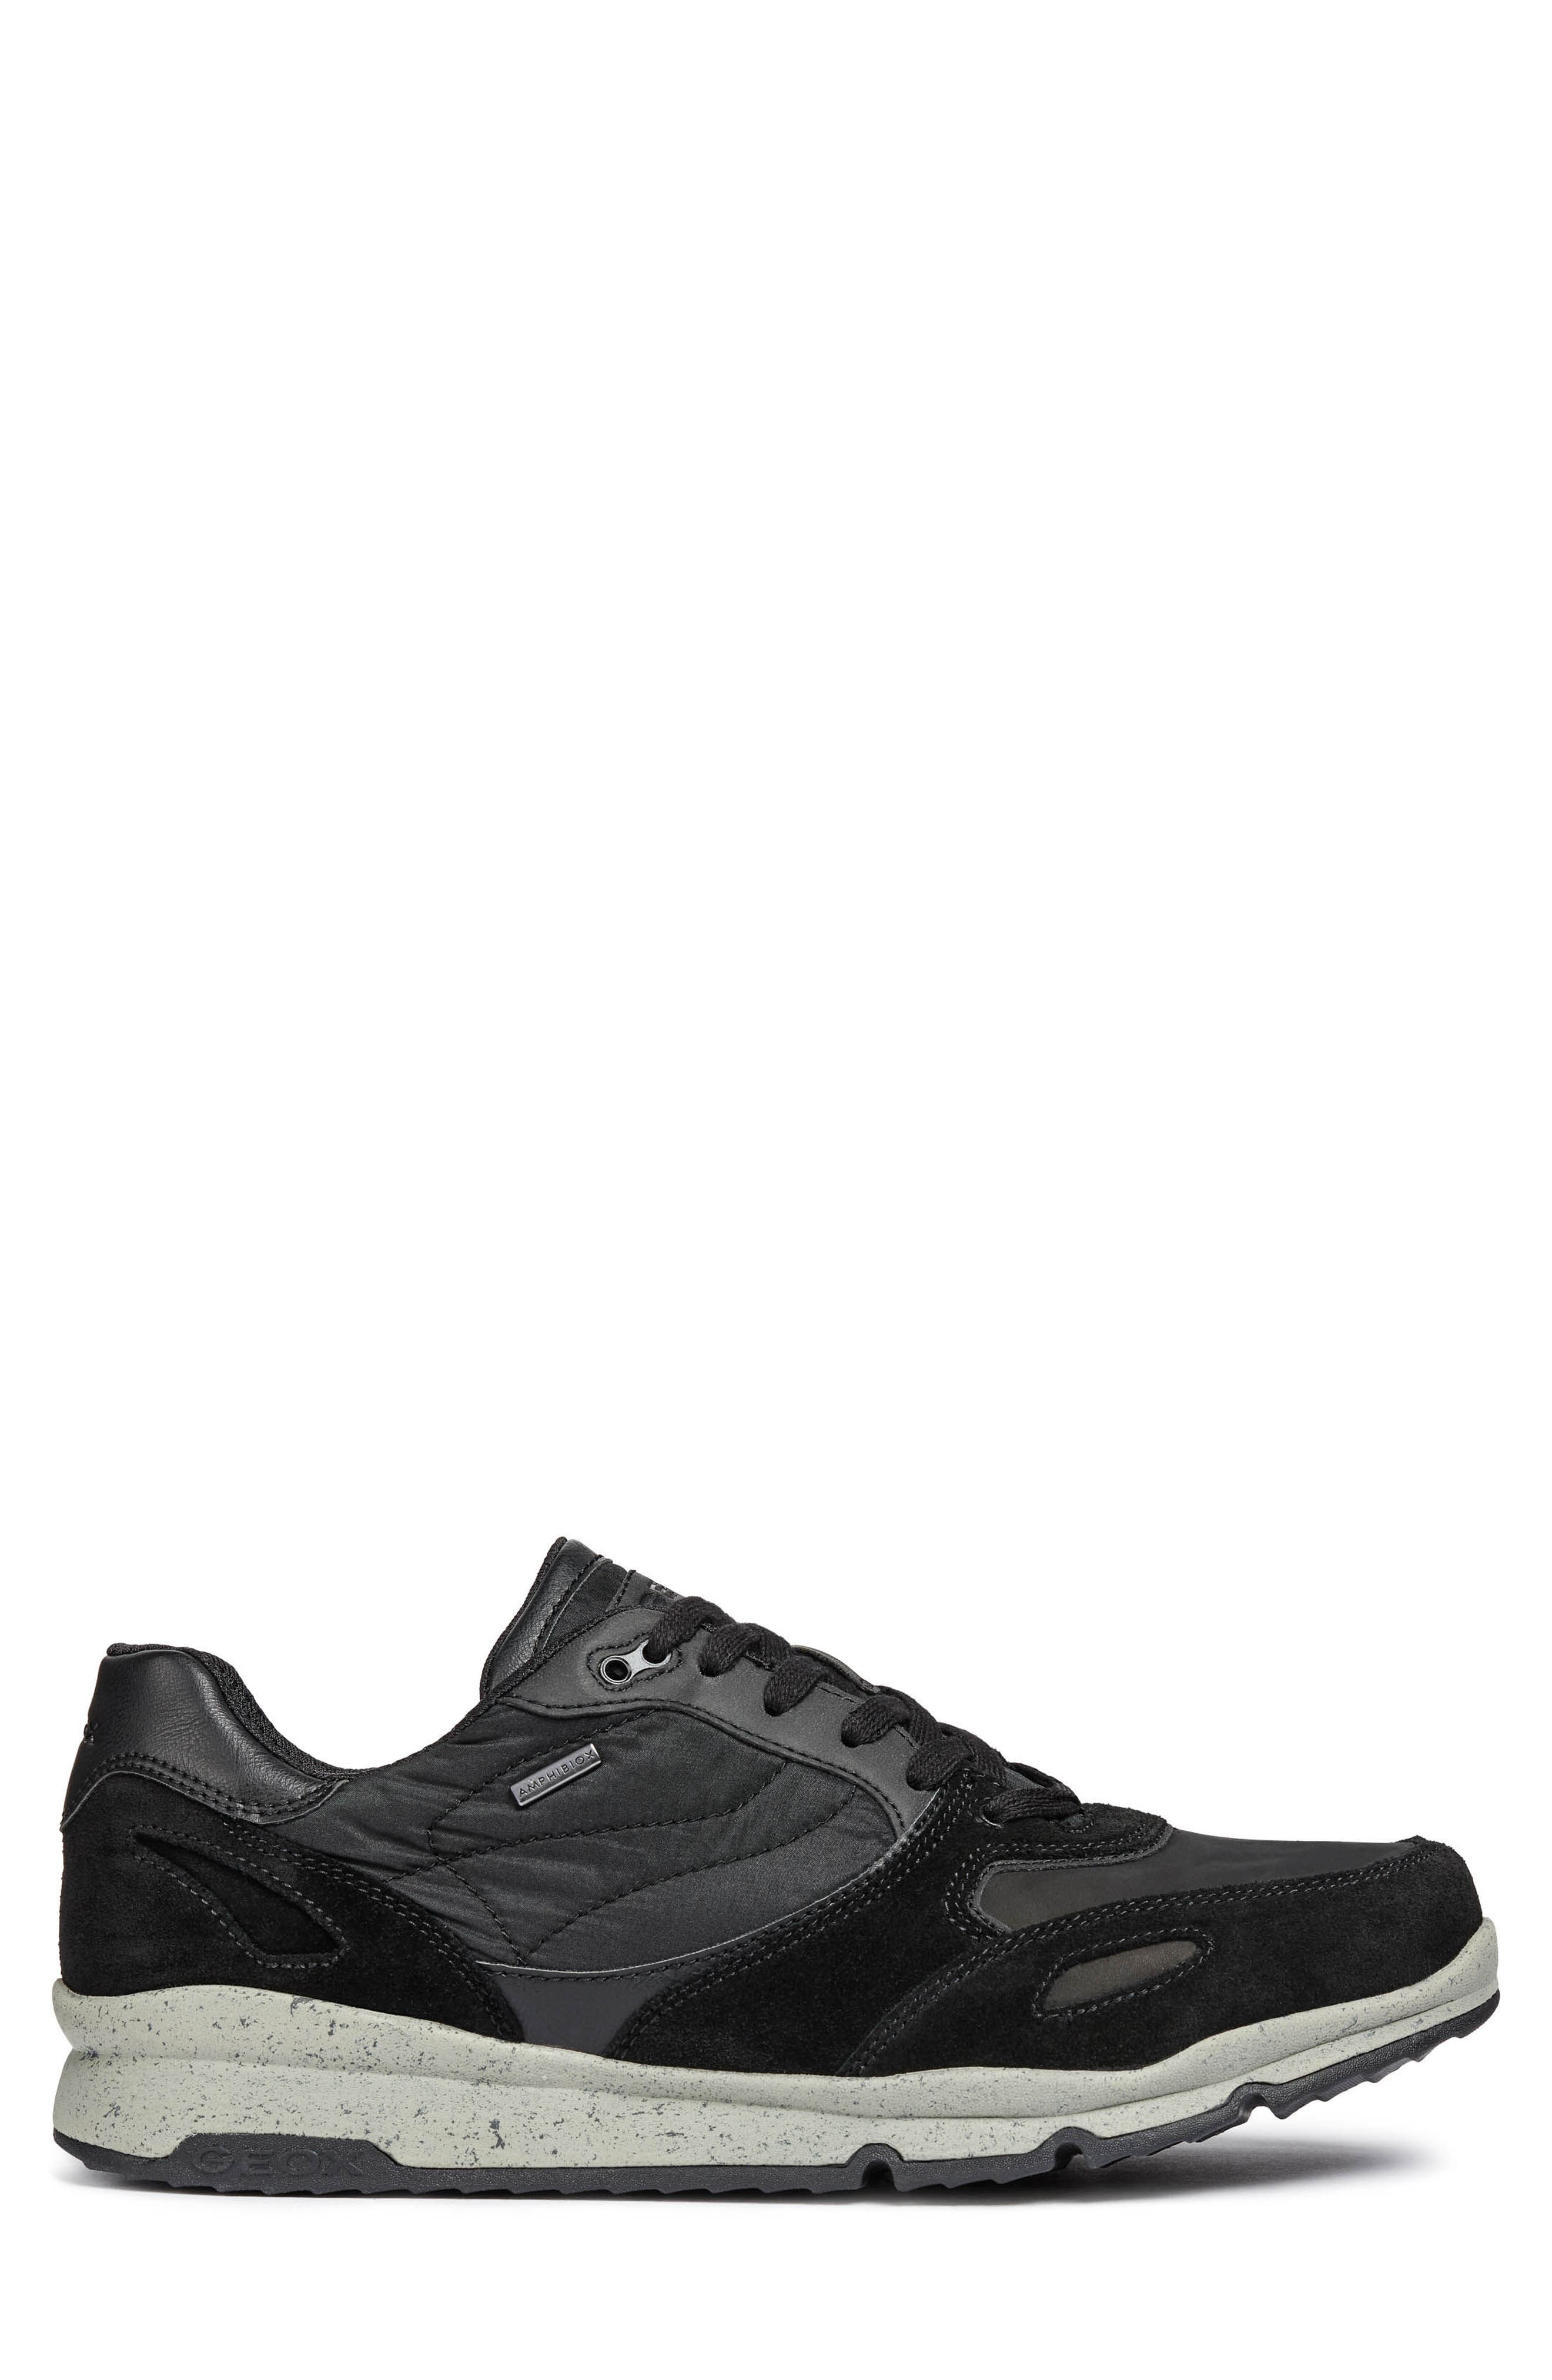 Sandro ABX Ambphibiox Waterproof Sneaker,                             Alternate thumbnail 3, color,                             BLACK/ BLACK LEATHER